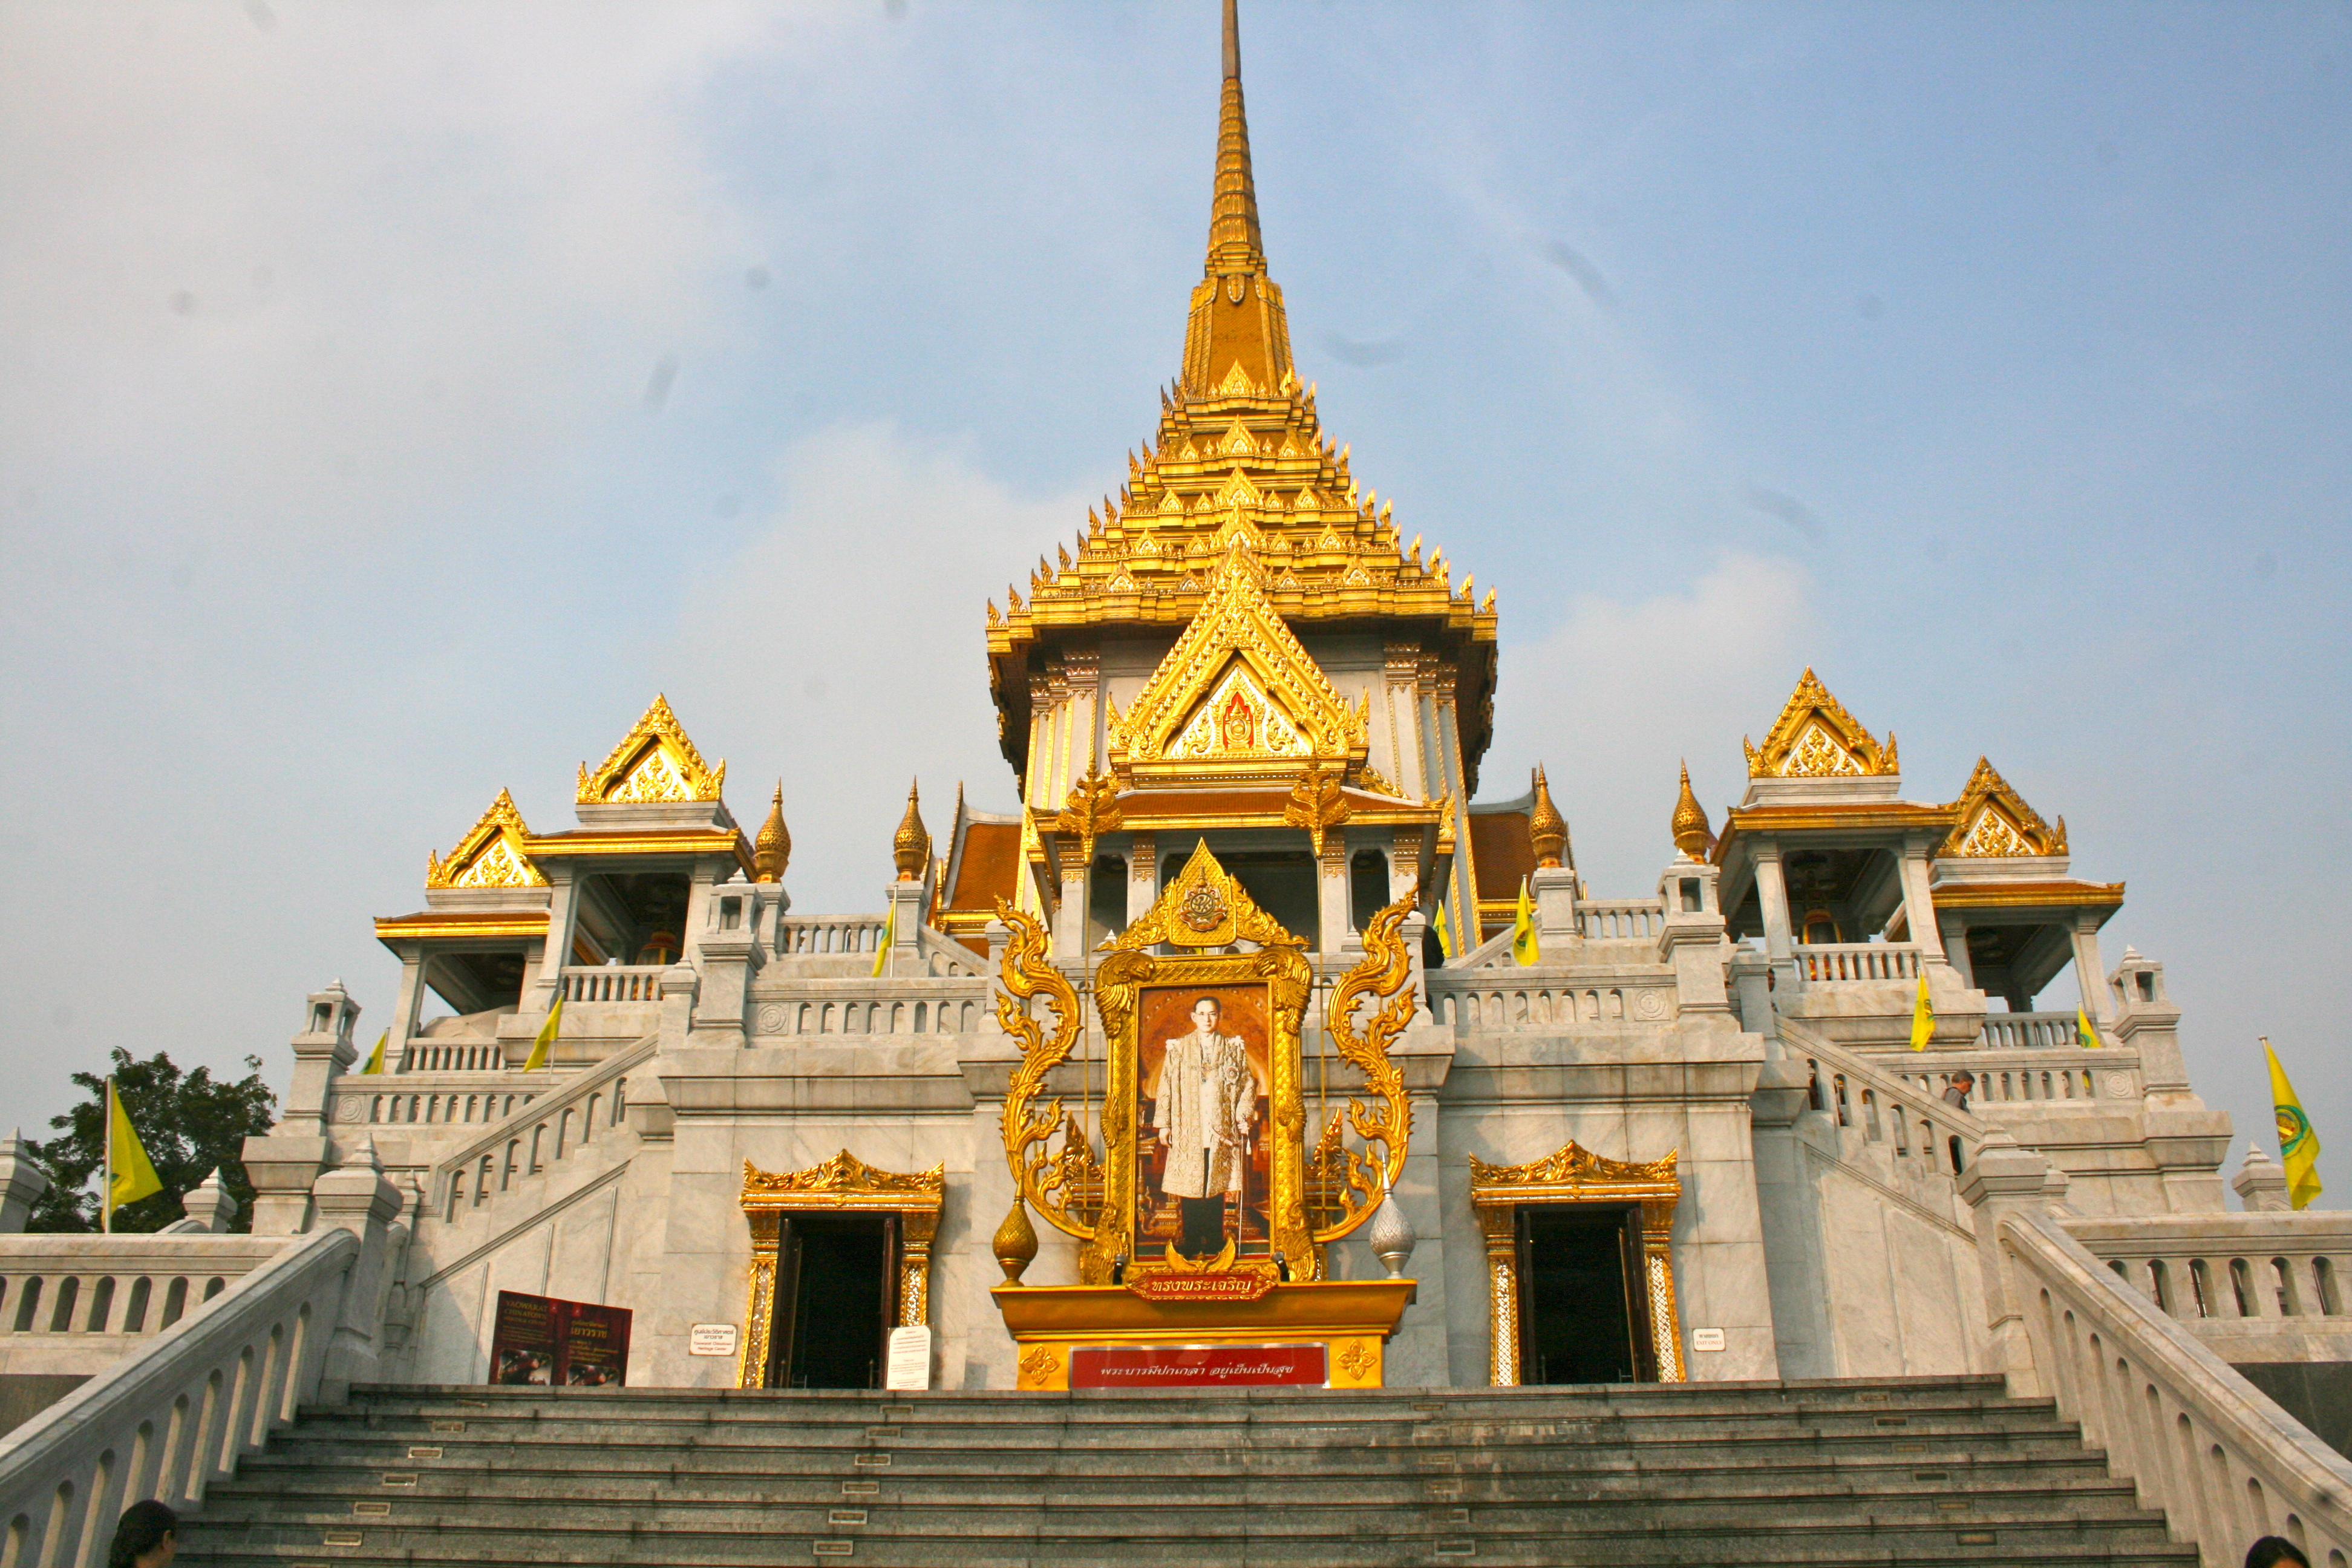 File:Wat Traimit Temple, home of The Golden Buddha (8282543652).jpg - Wikimed...